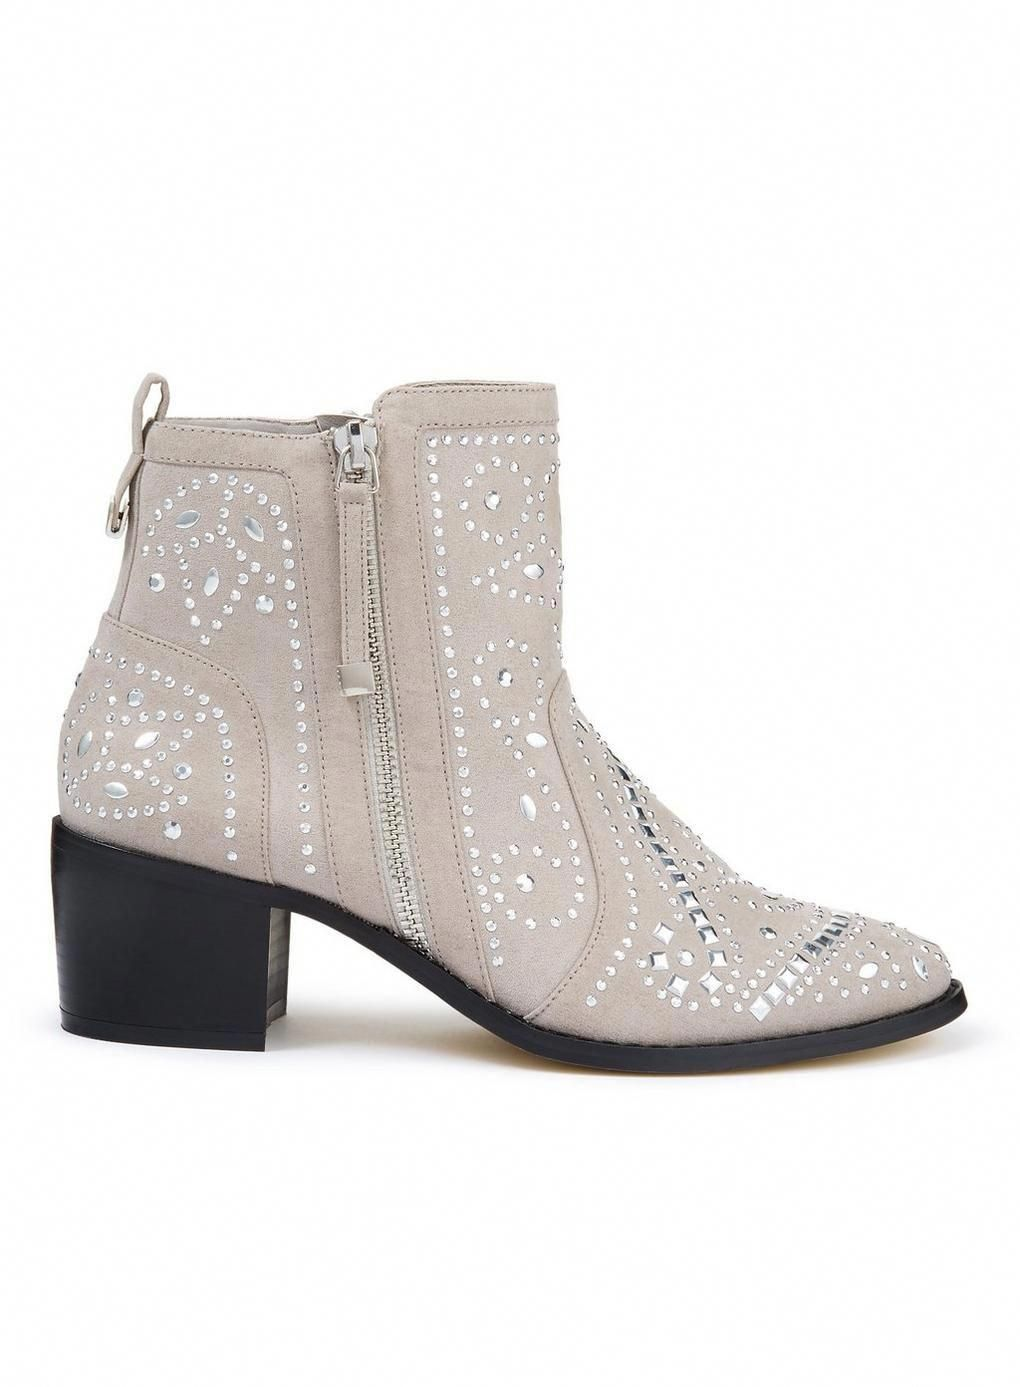 0654deb986 DAZZLE Grey Studded Ankle Boots -  76  womensfashionboots